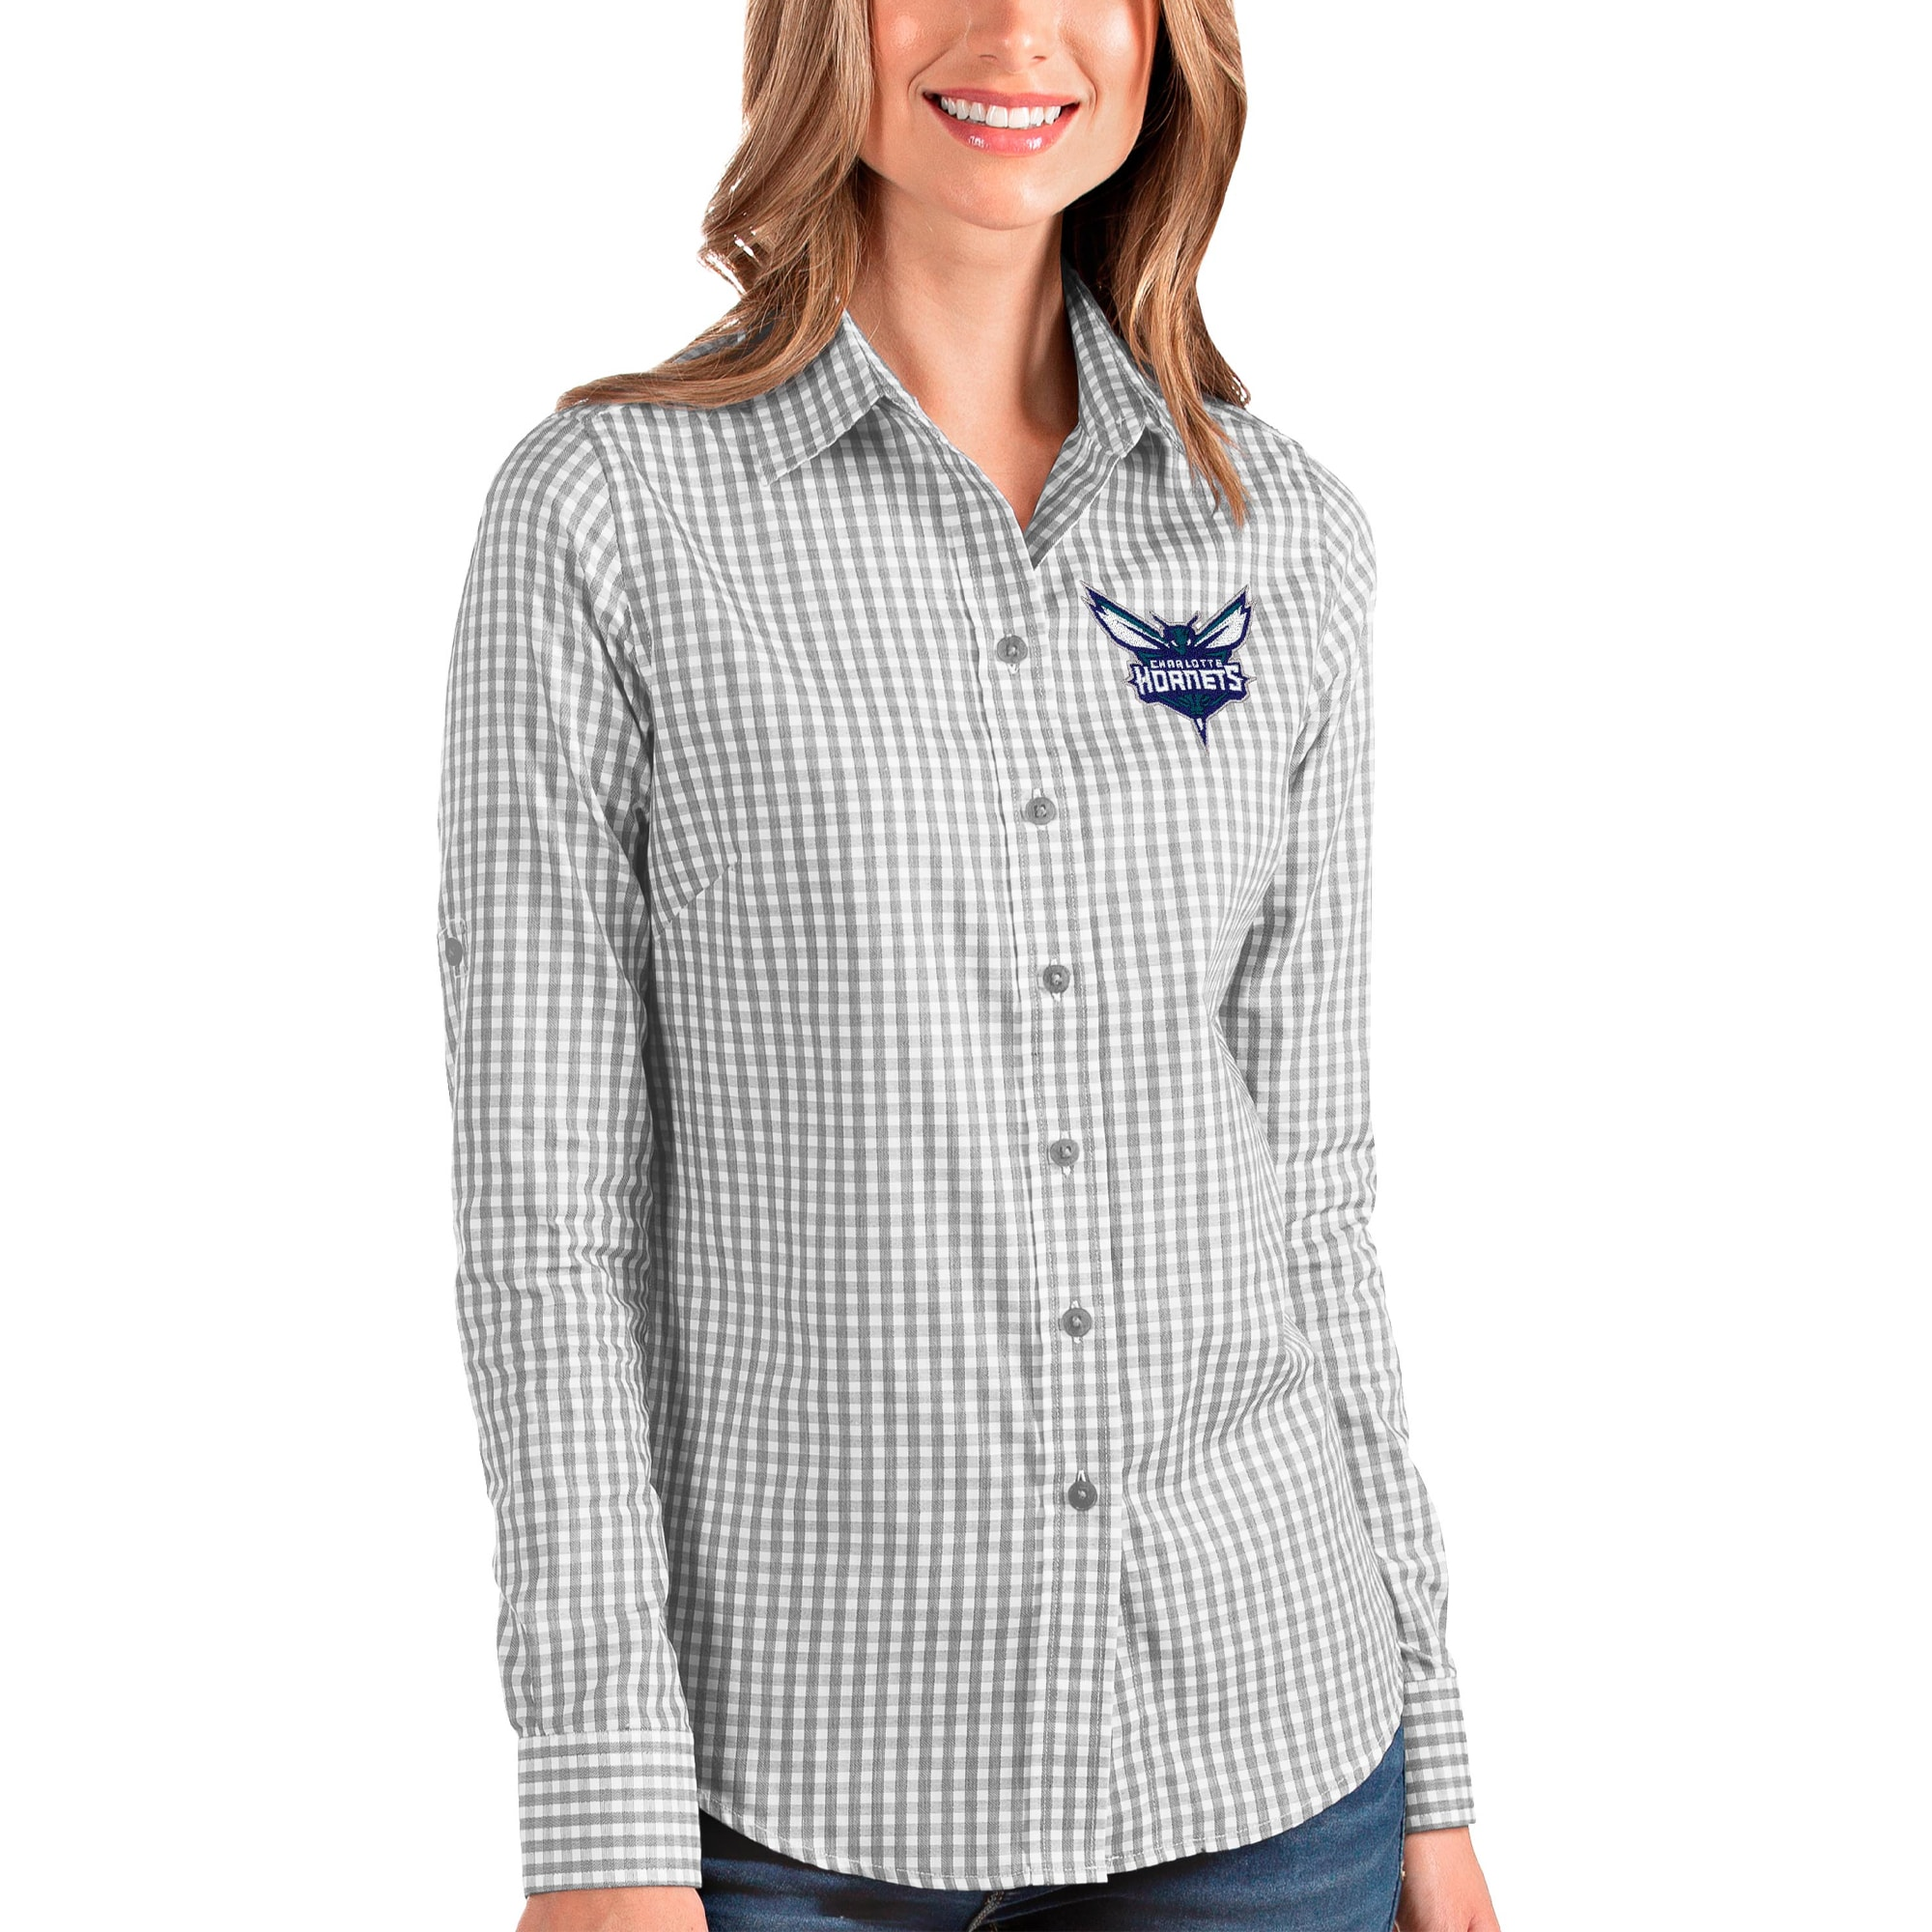 Charlotte Hornets Antigua Women's Structure Button-Up Long Sleeve Shirt - Charcoal/White